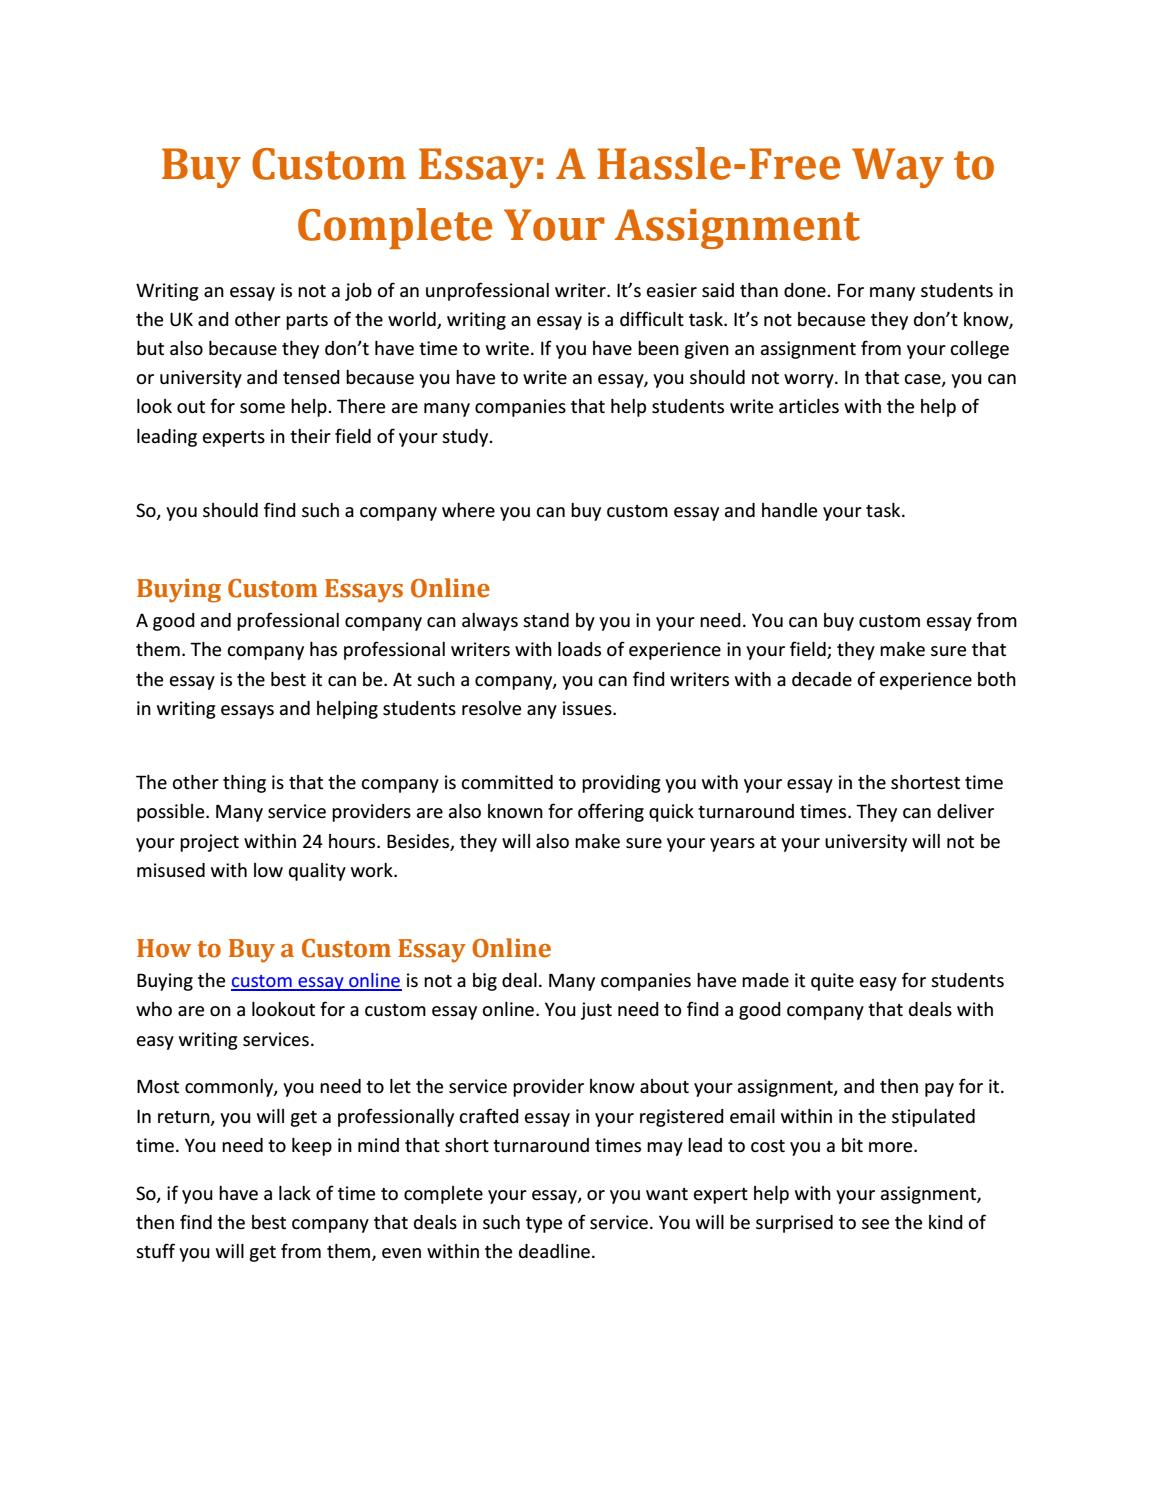 001 Page 1 Buy Custom Essays Online Essay Impressive Full